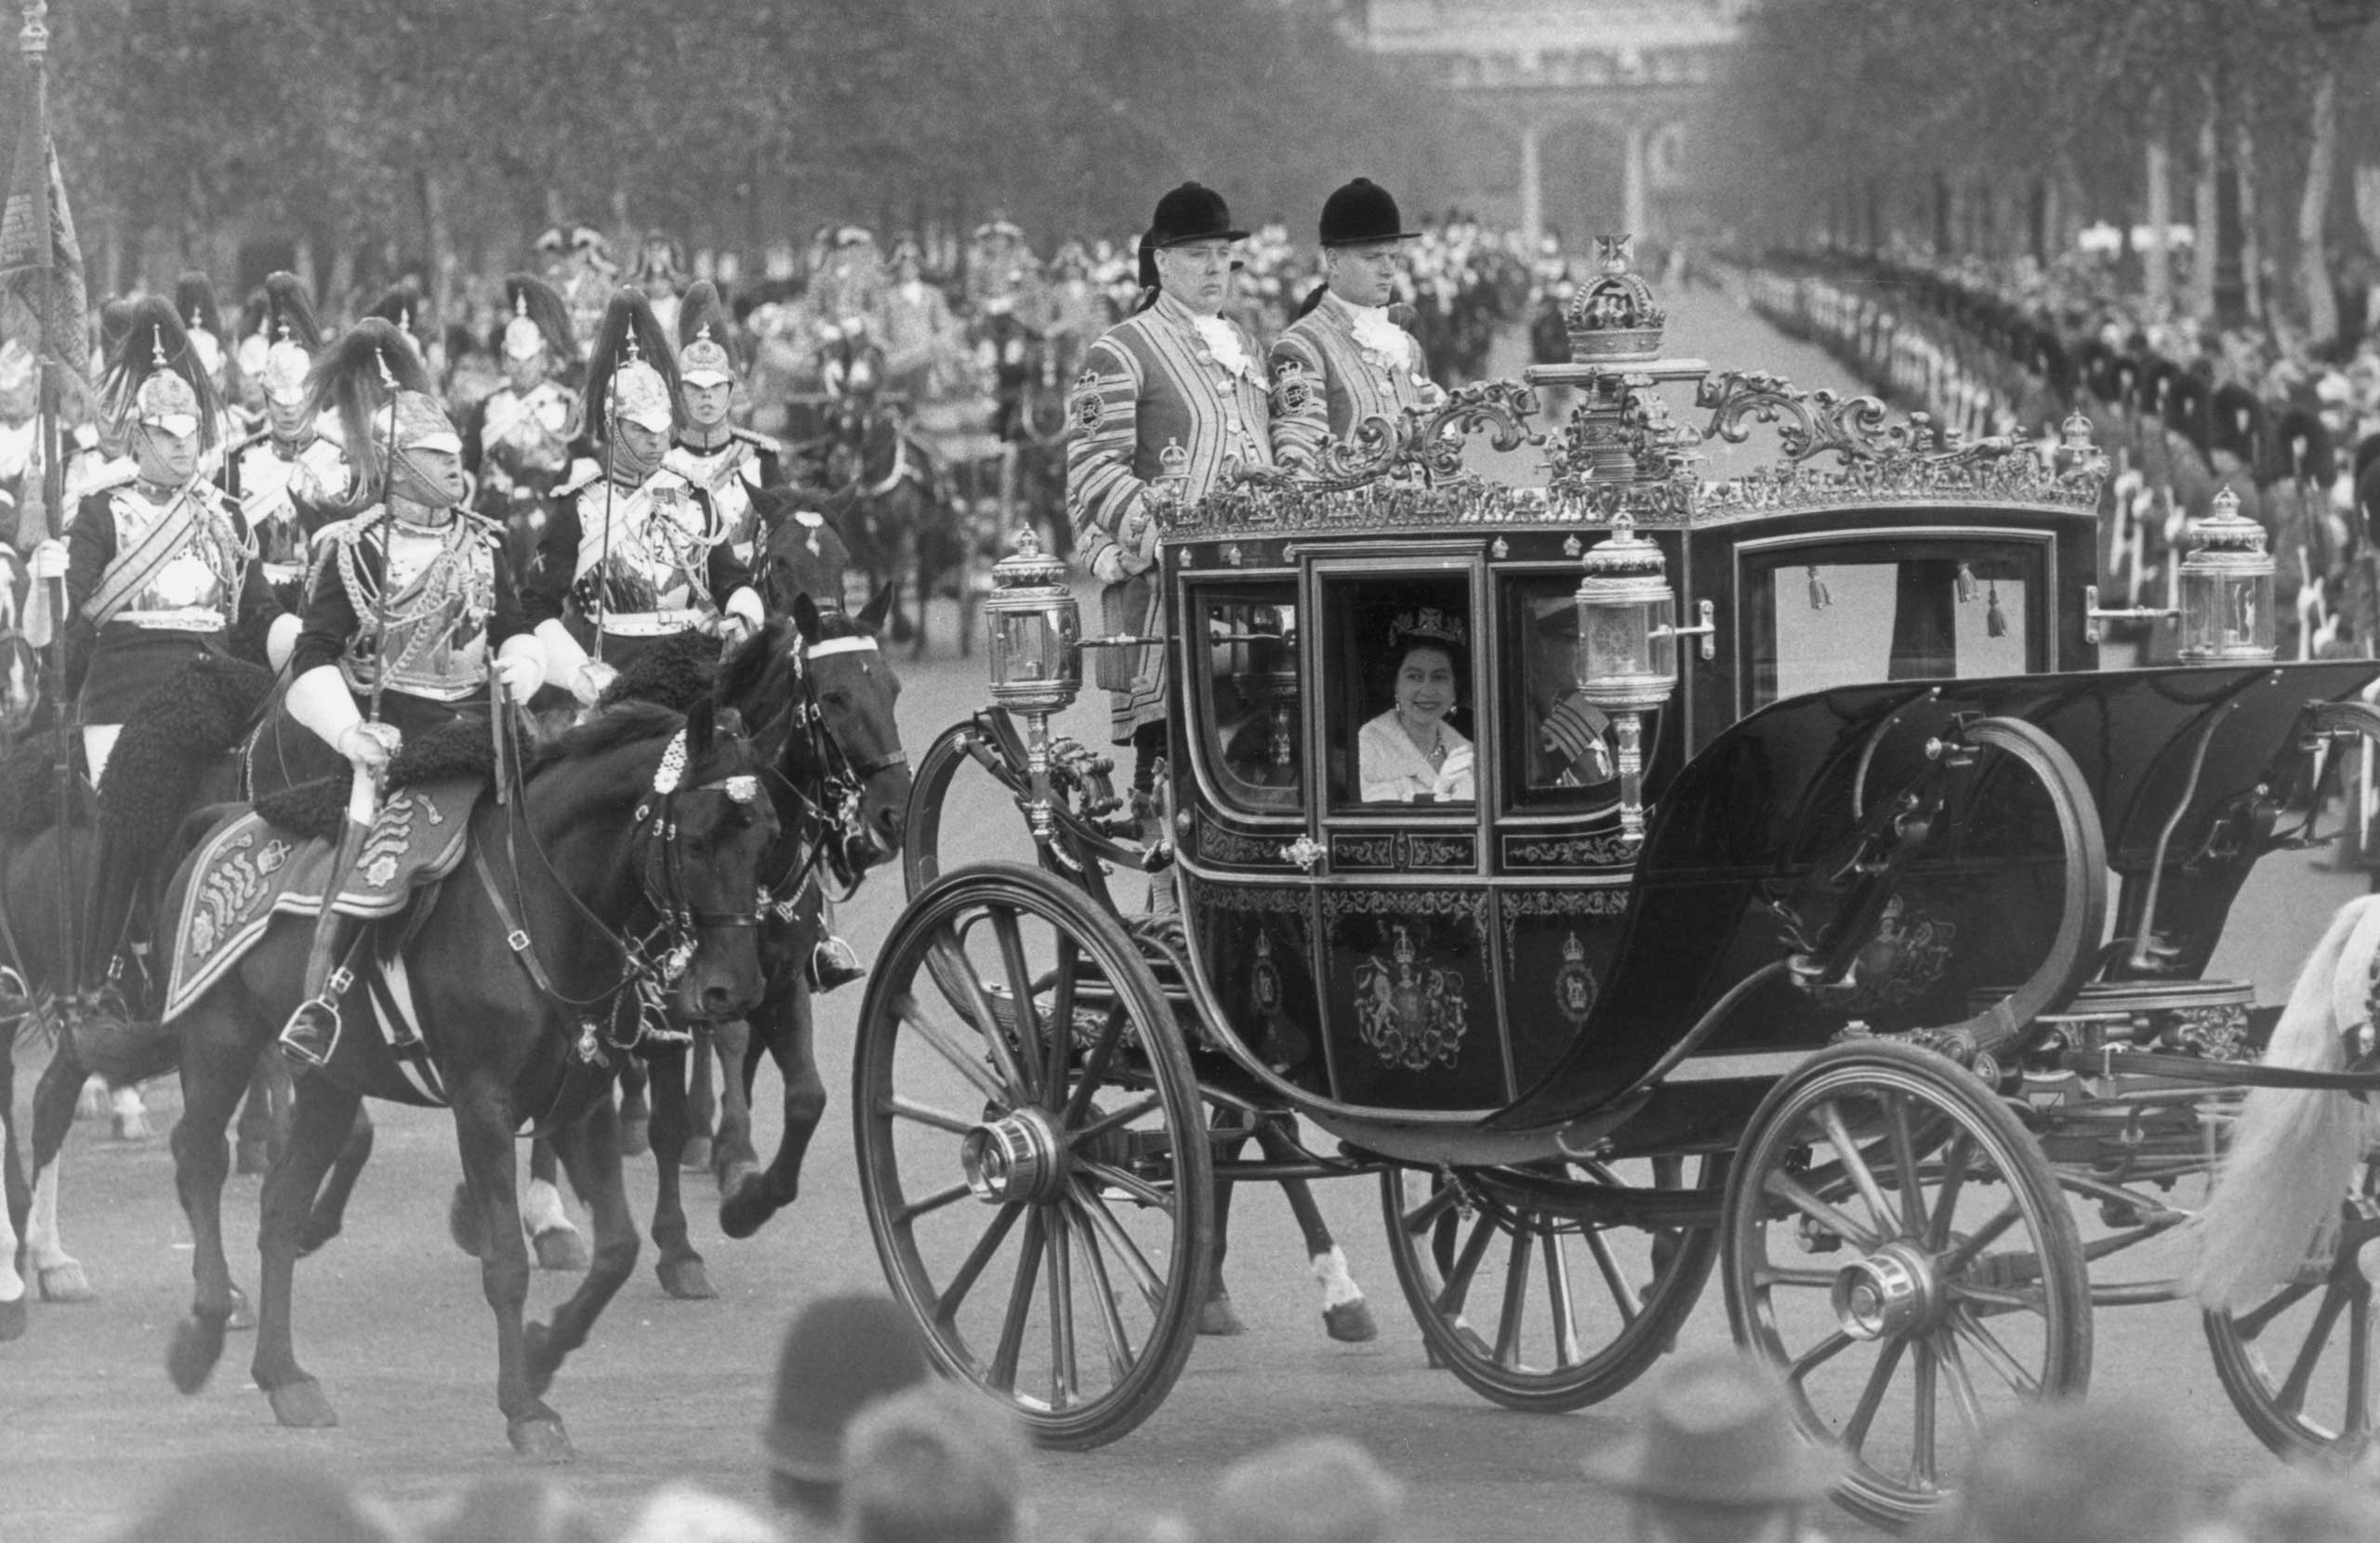 Queen Elizabeth II drives past the Victoria Memorial outside Buckingham Palace in the Irish State Coach, on her way to take part in the State Opening Of Parliament in 1962.